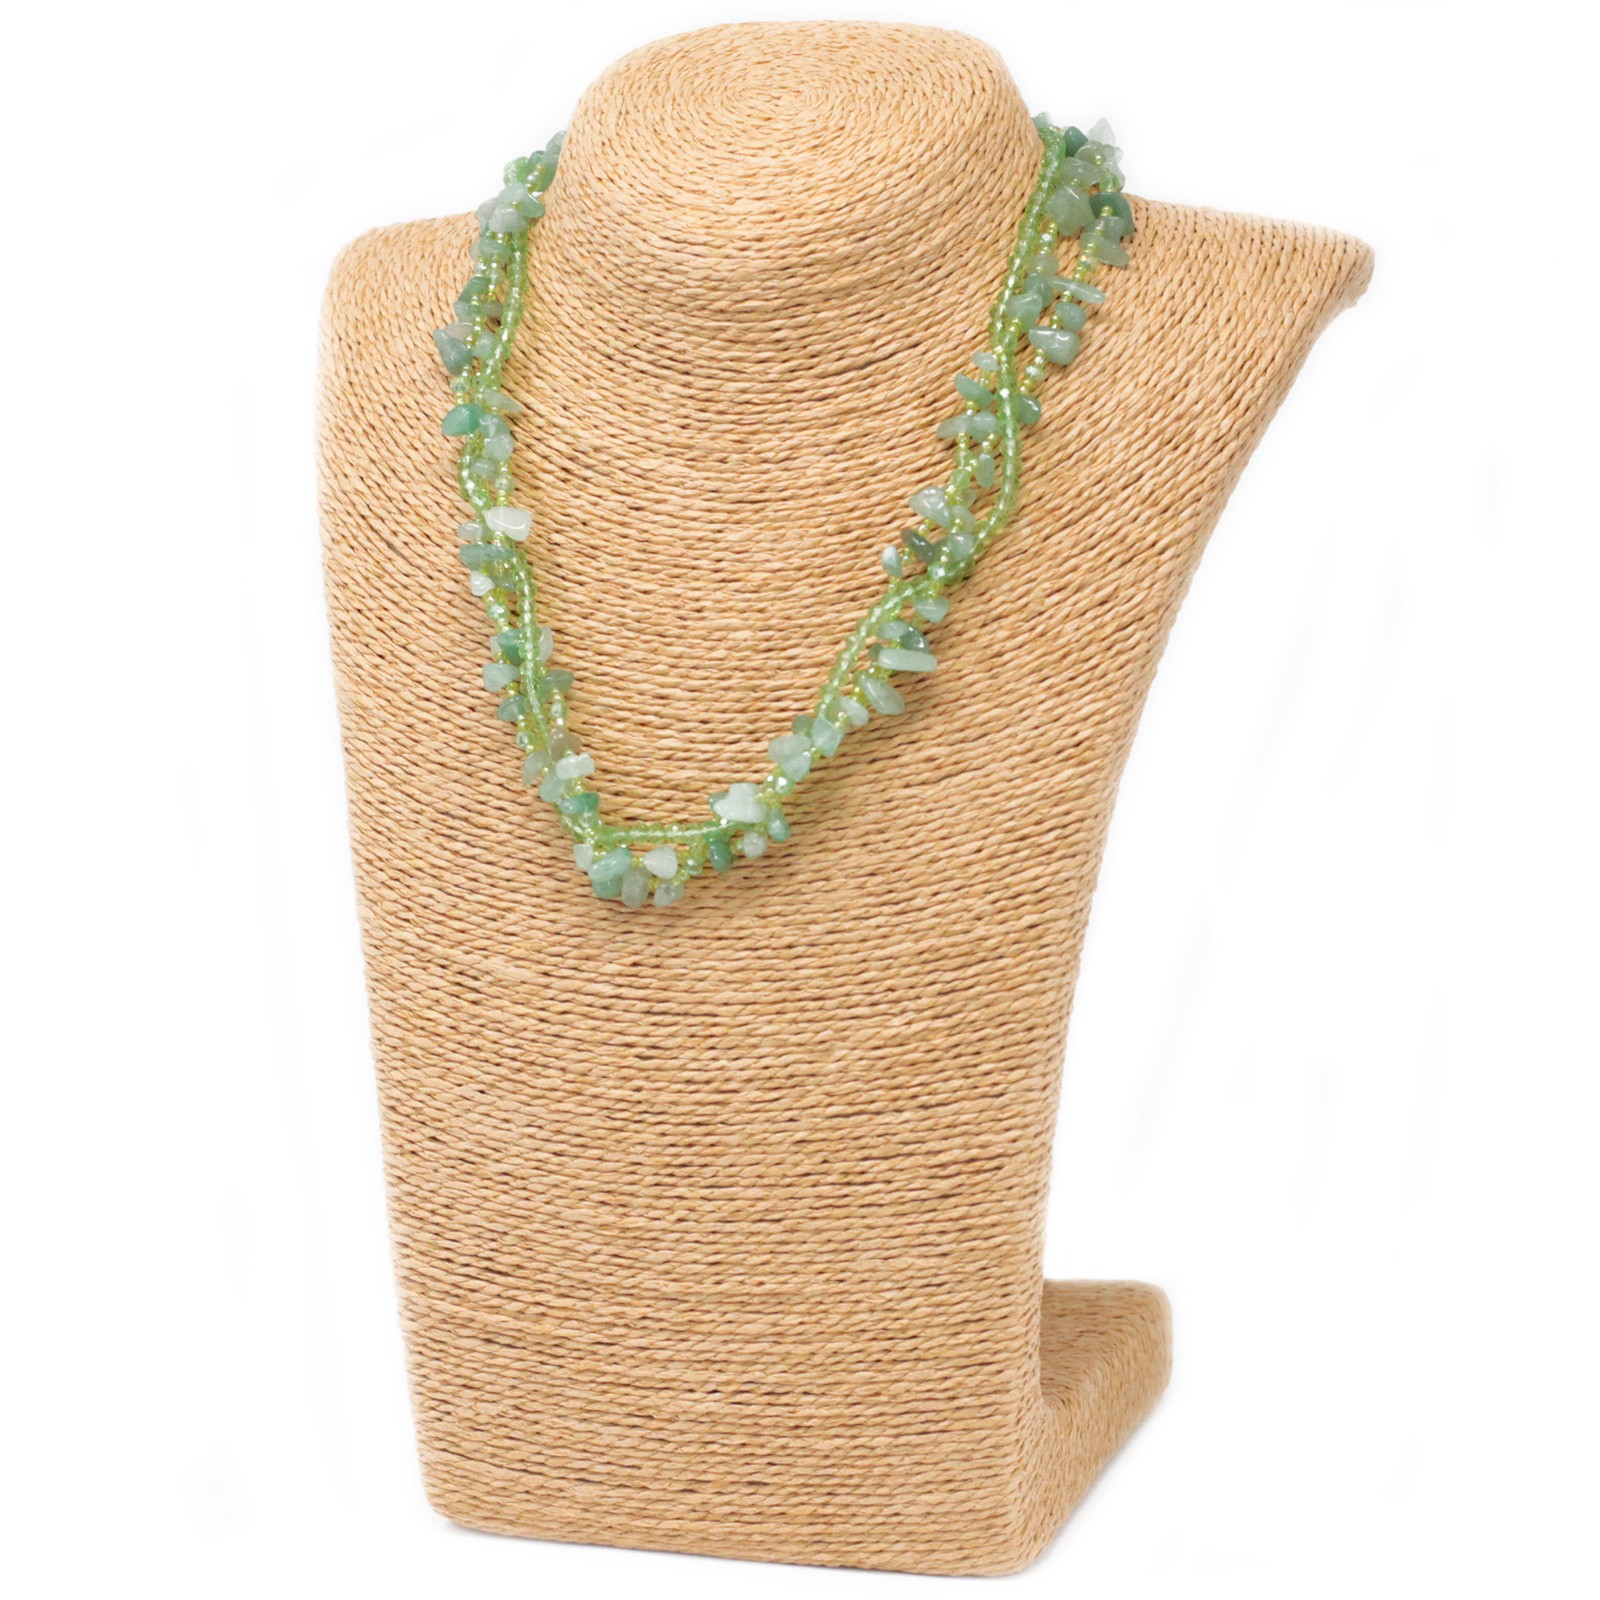 Chipstone & Bead Necklace - Jade